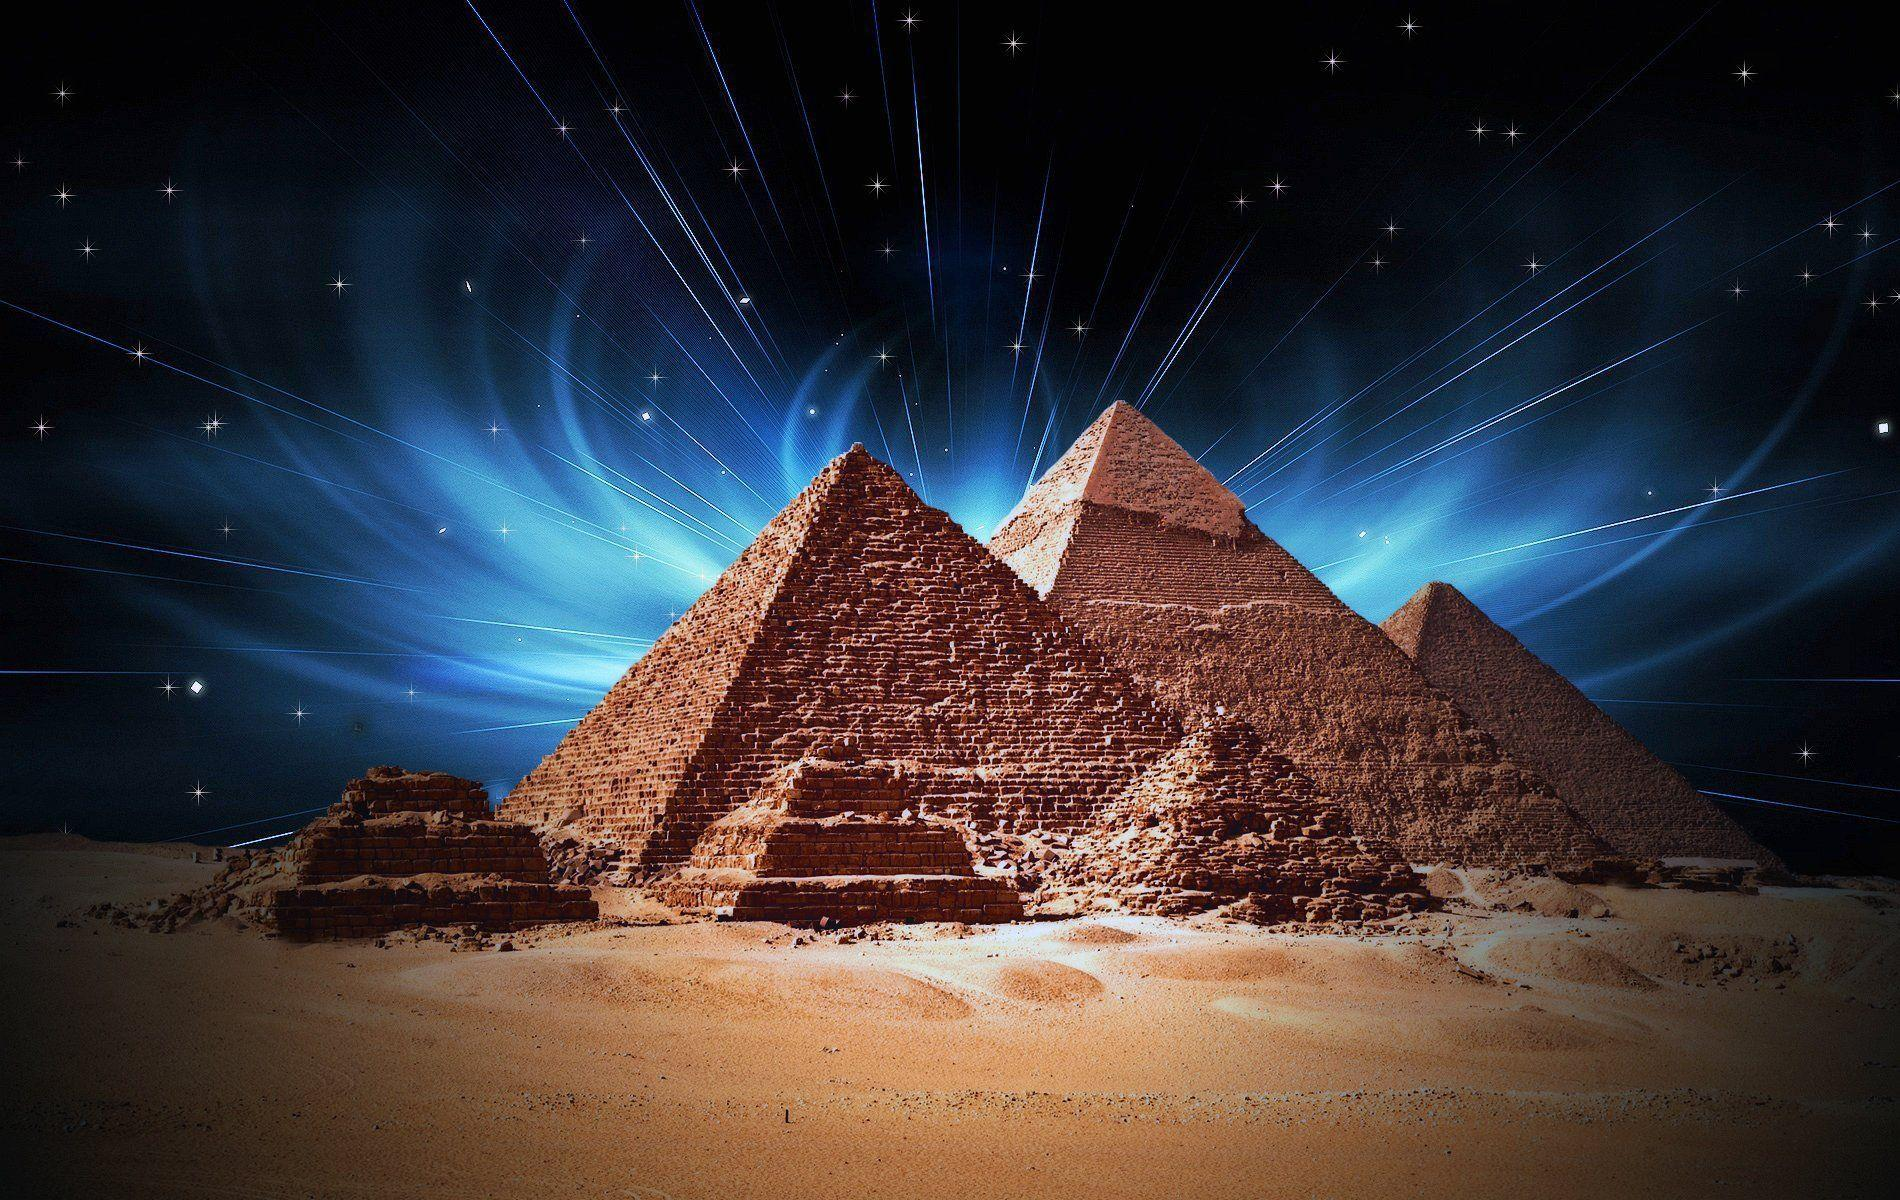 3d Moving Galaxy Wallpaper Giza Pyramids Wallpapers Wallpaper Cave